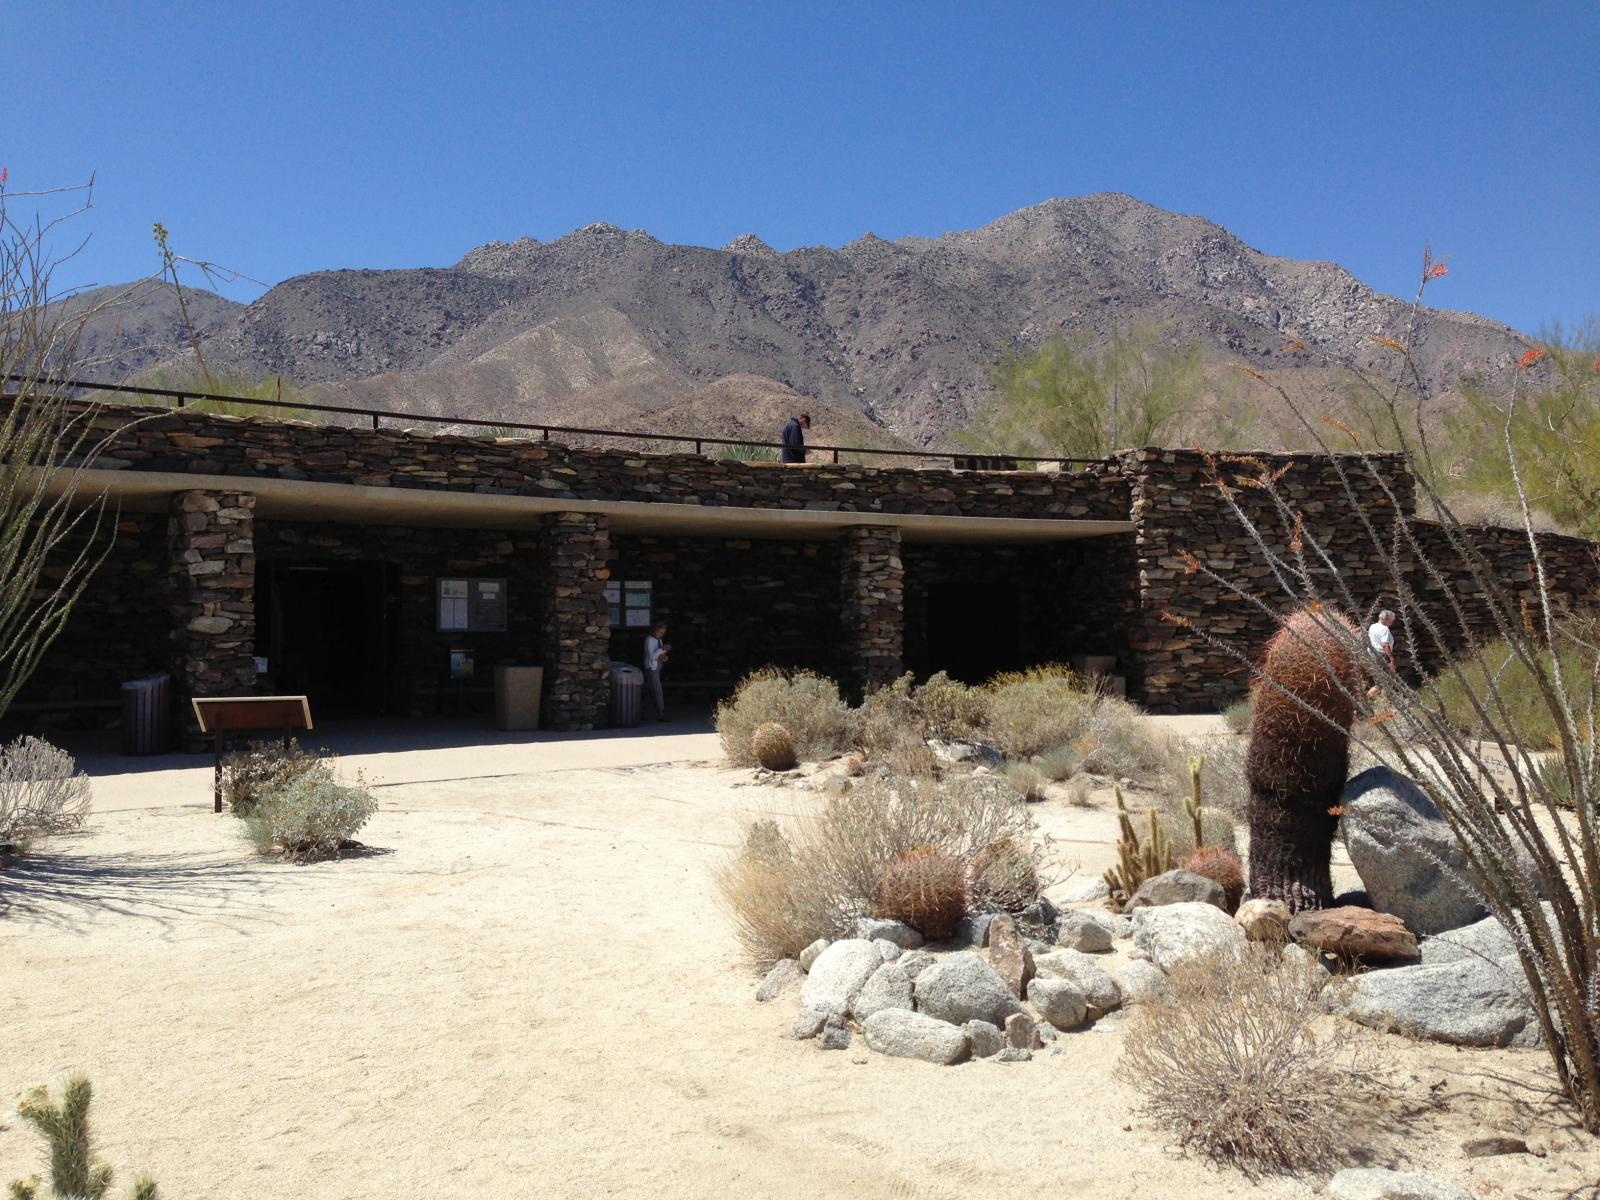 Anza Borrego - Visitor Center